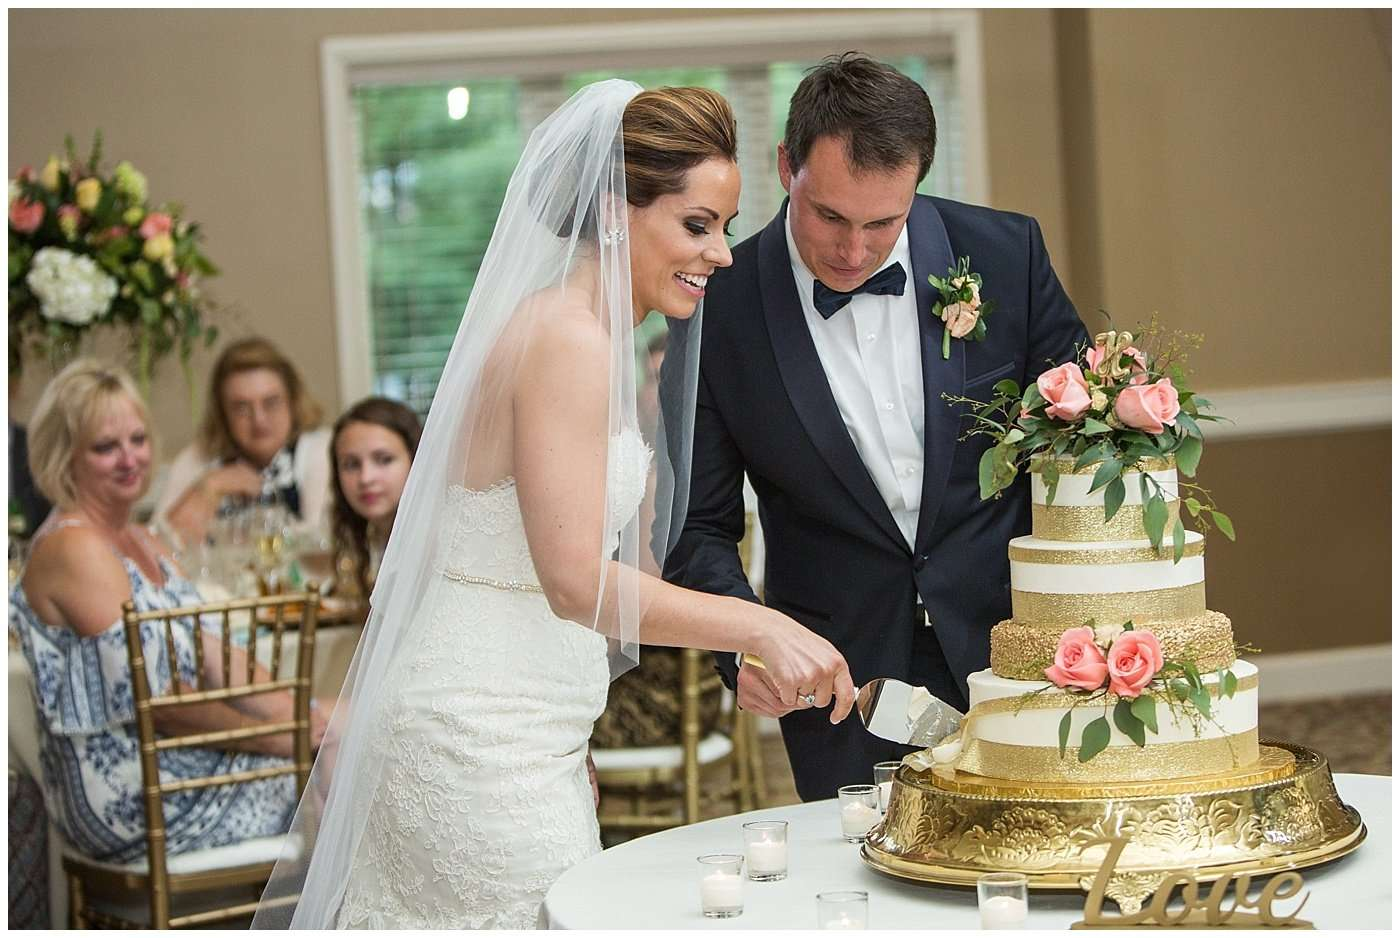 Kim & Lee | A Summer Wedding at Brookside Country Club 180